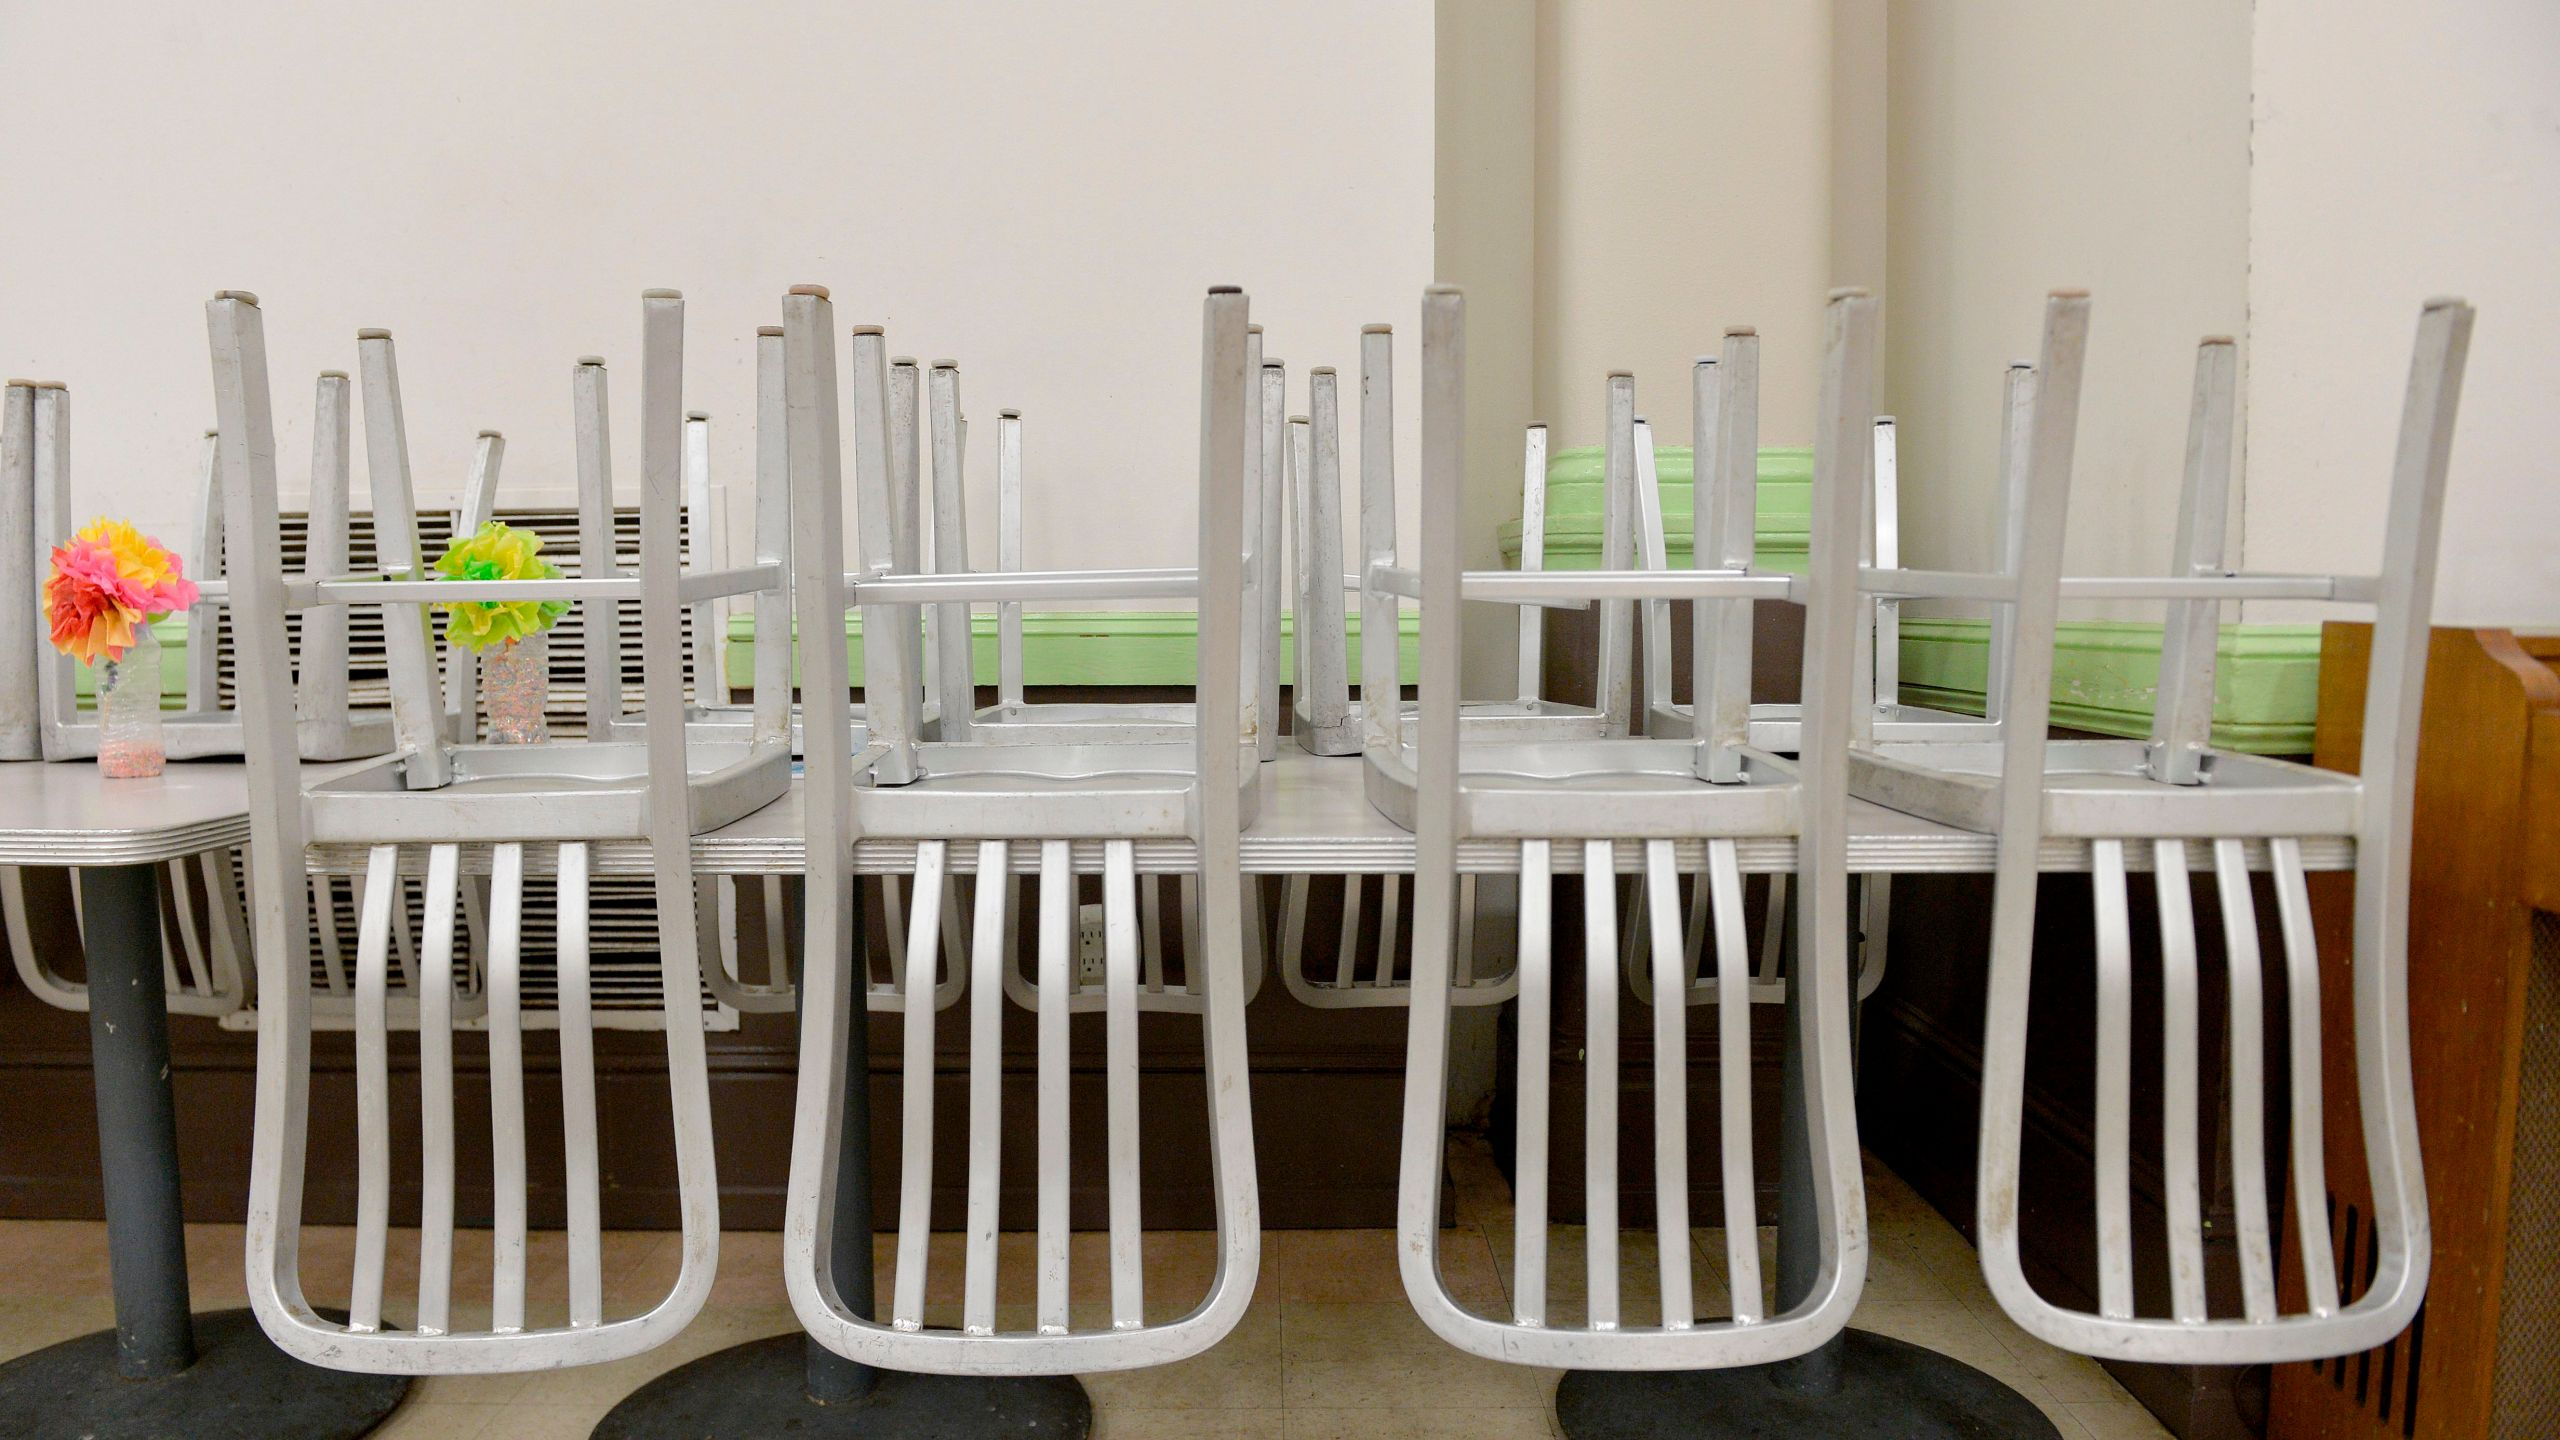 Chairs are placed on tables where guest usually eat their meals at My Brother's Table soup kitchen in Lynn, Massachusetts on March 30, 2020. (JOSEPH PREZIOSO/AFP via Getty Images)